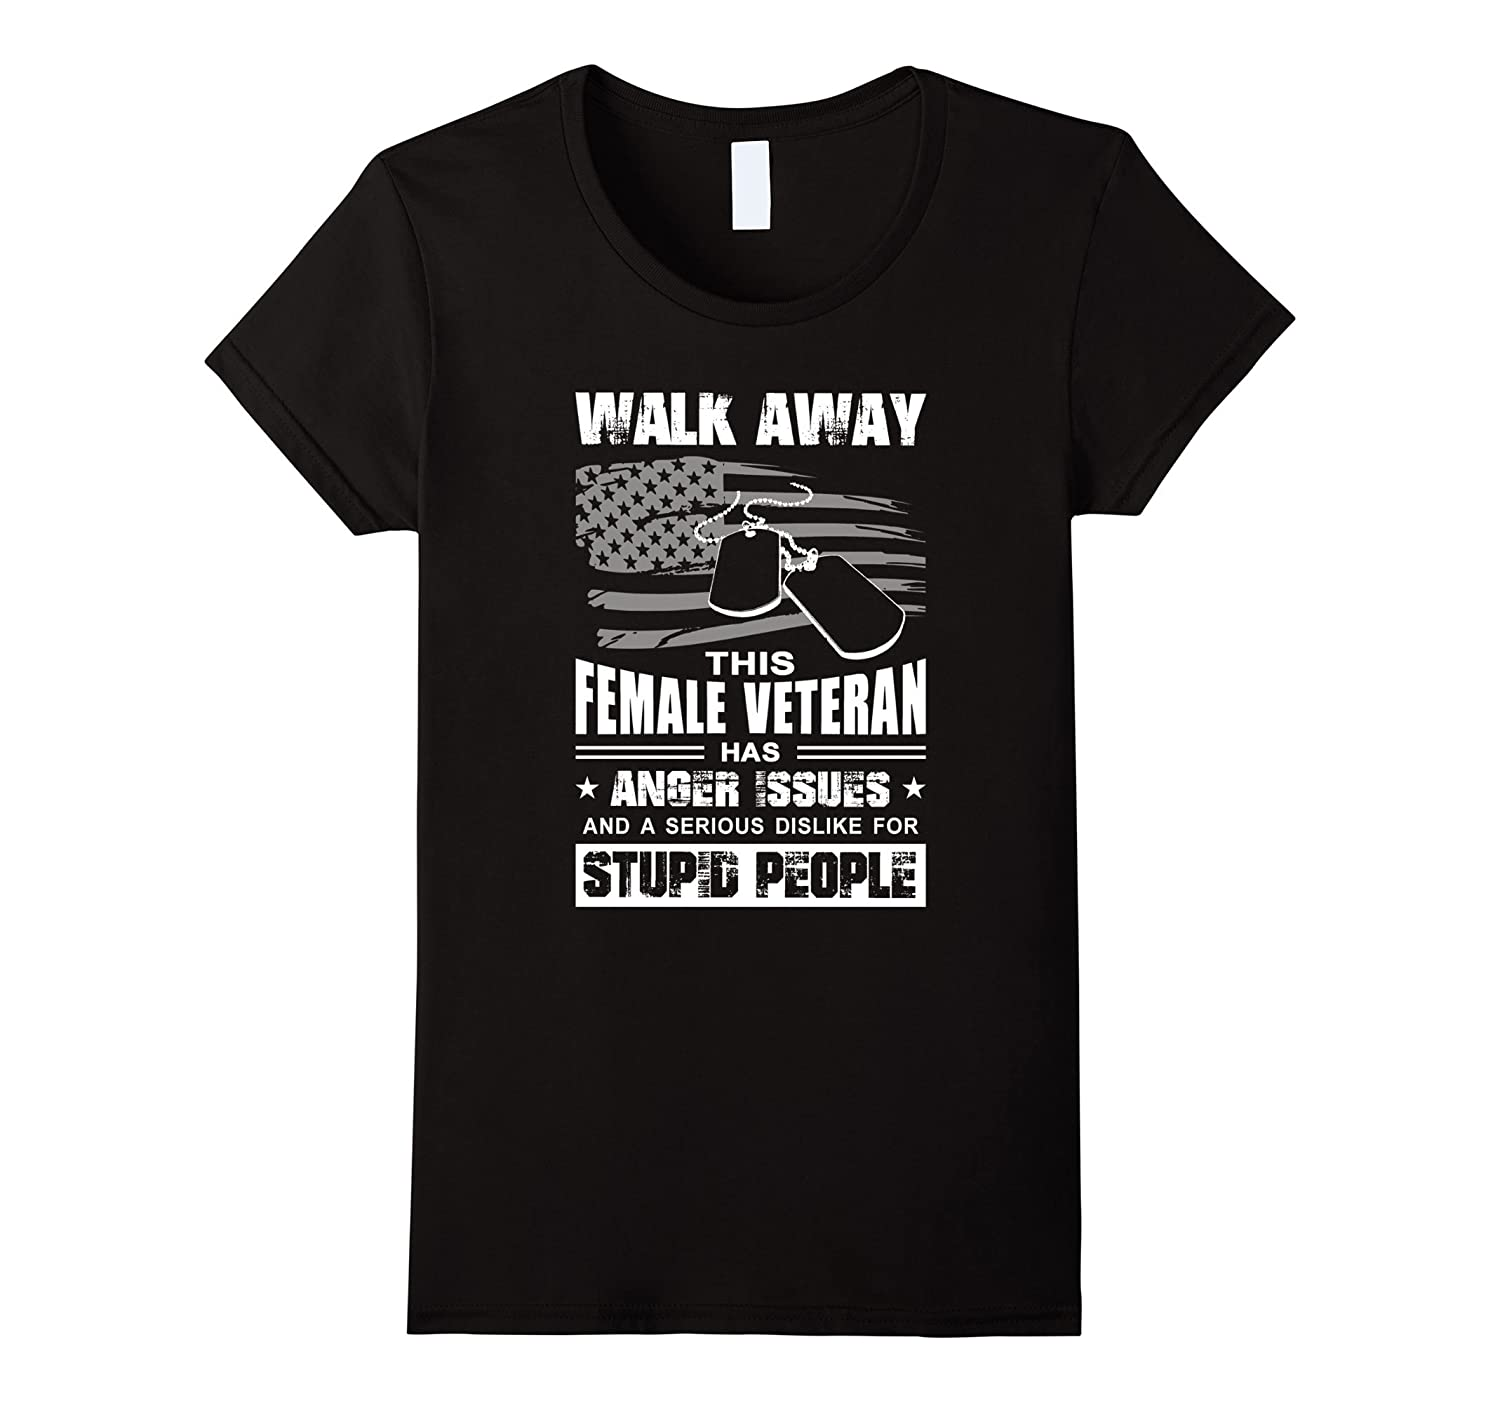 Walk Away This Female Veteran Has Anger Issues And A Serious